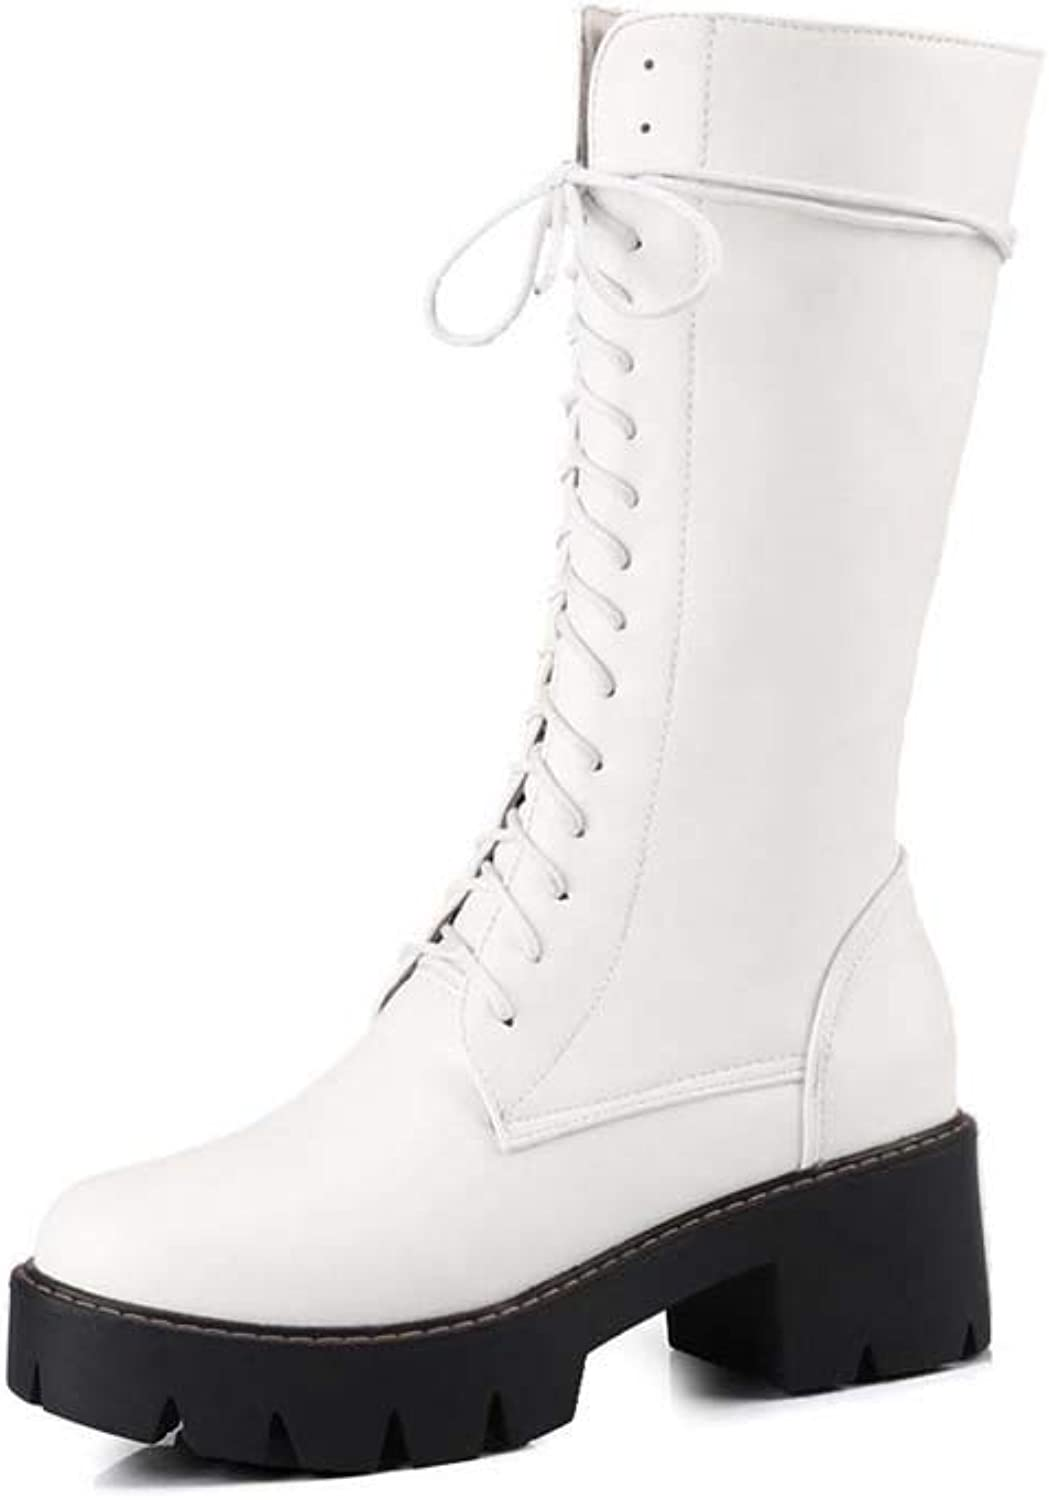 Ladies' Boots, Waterproof Platform with 34-43 Large Size Boots